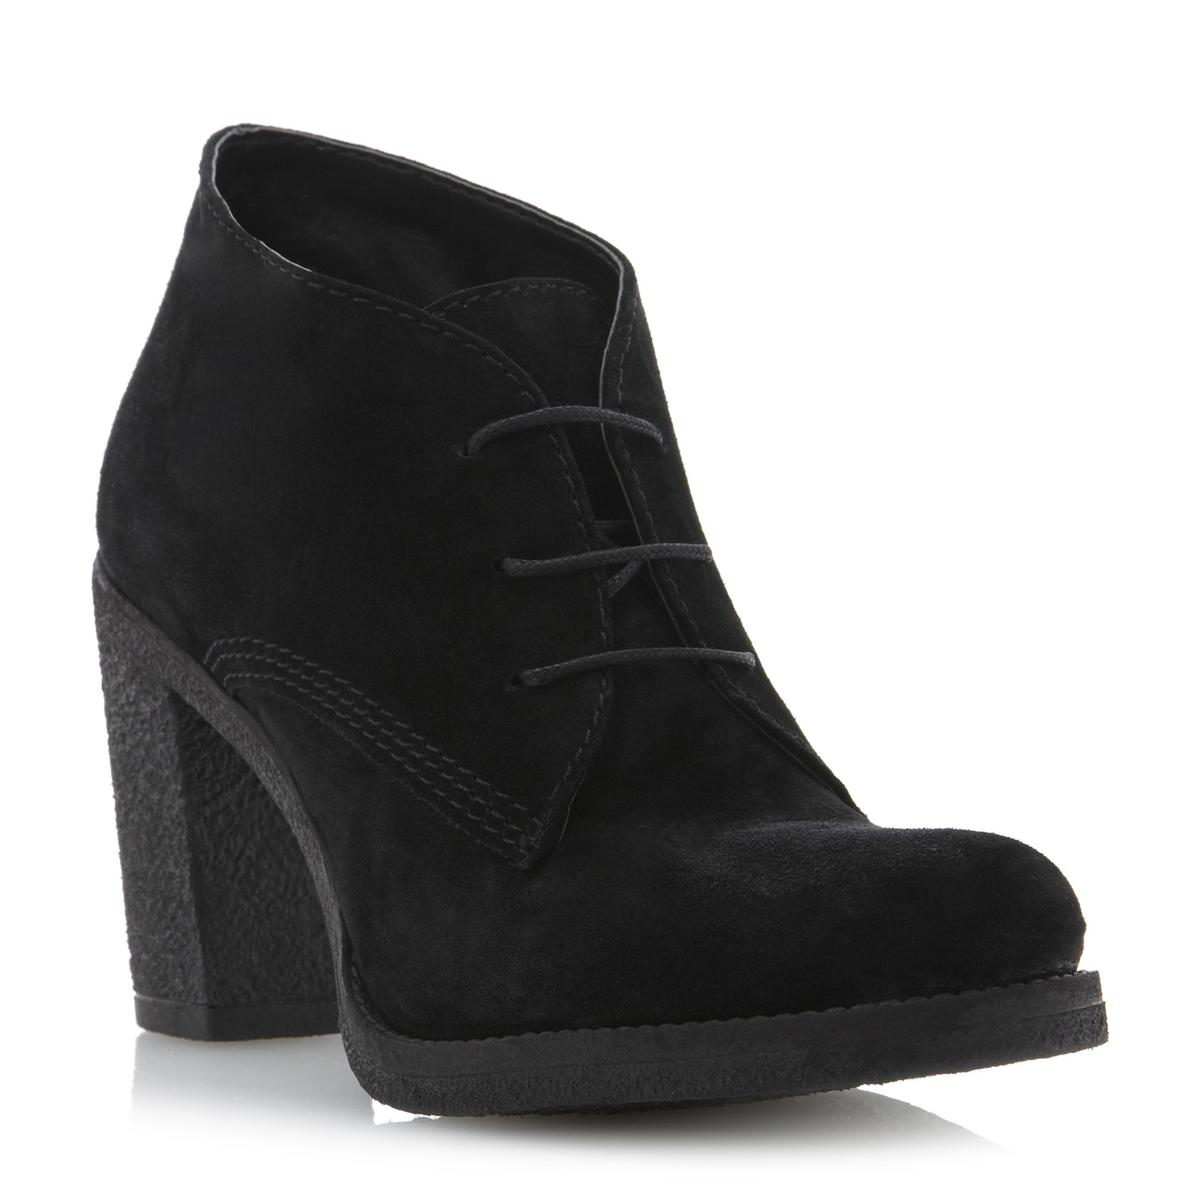 Black Suede Ankle Boots. Showing 48 of results that match your query. Search Product Result. Product - Sloggers Women's Rain & Garden Ankle Boots. Reduced Price. Product Image. Product - Black Suede Lace Up Floral Cutout Ankle Boots with Rhinestones and 6 Inch Heel. Reduced Price.